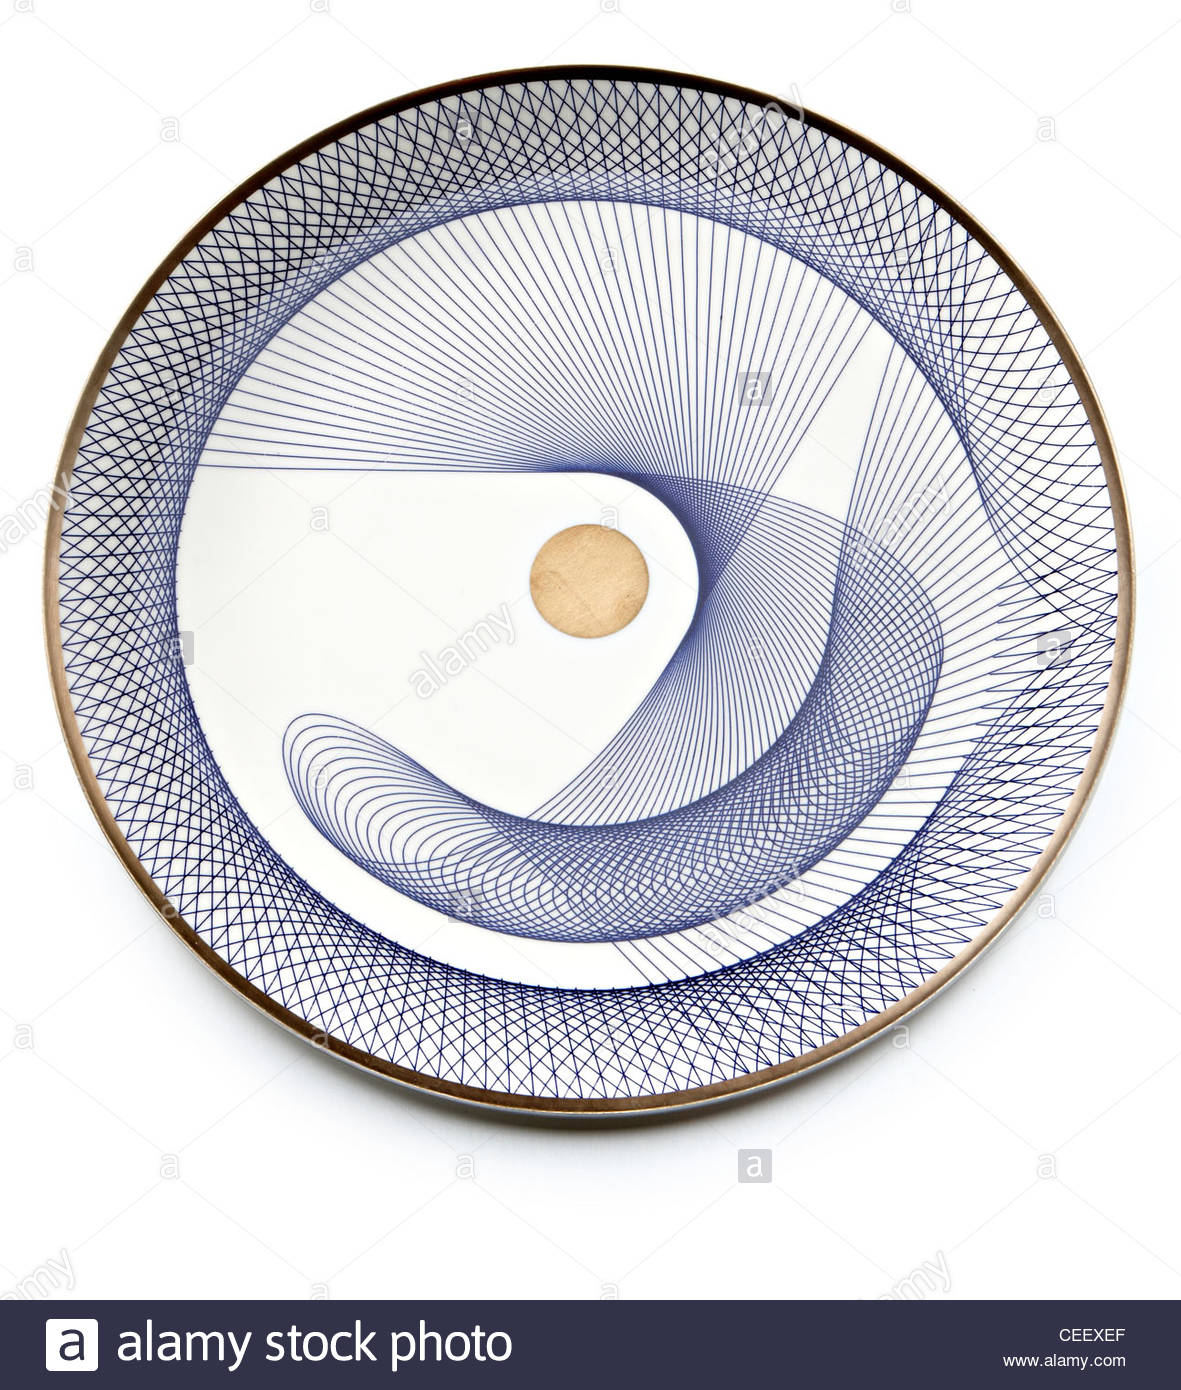 plate with spiral geometric design pattern - Stock Image